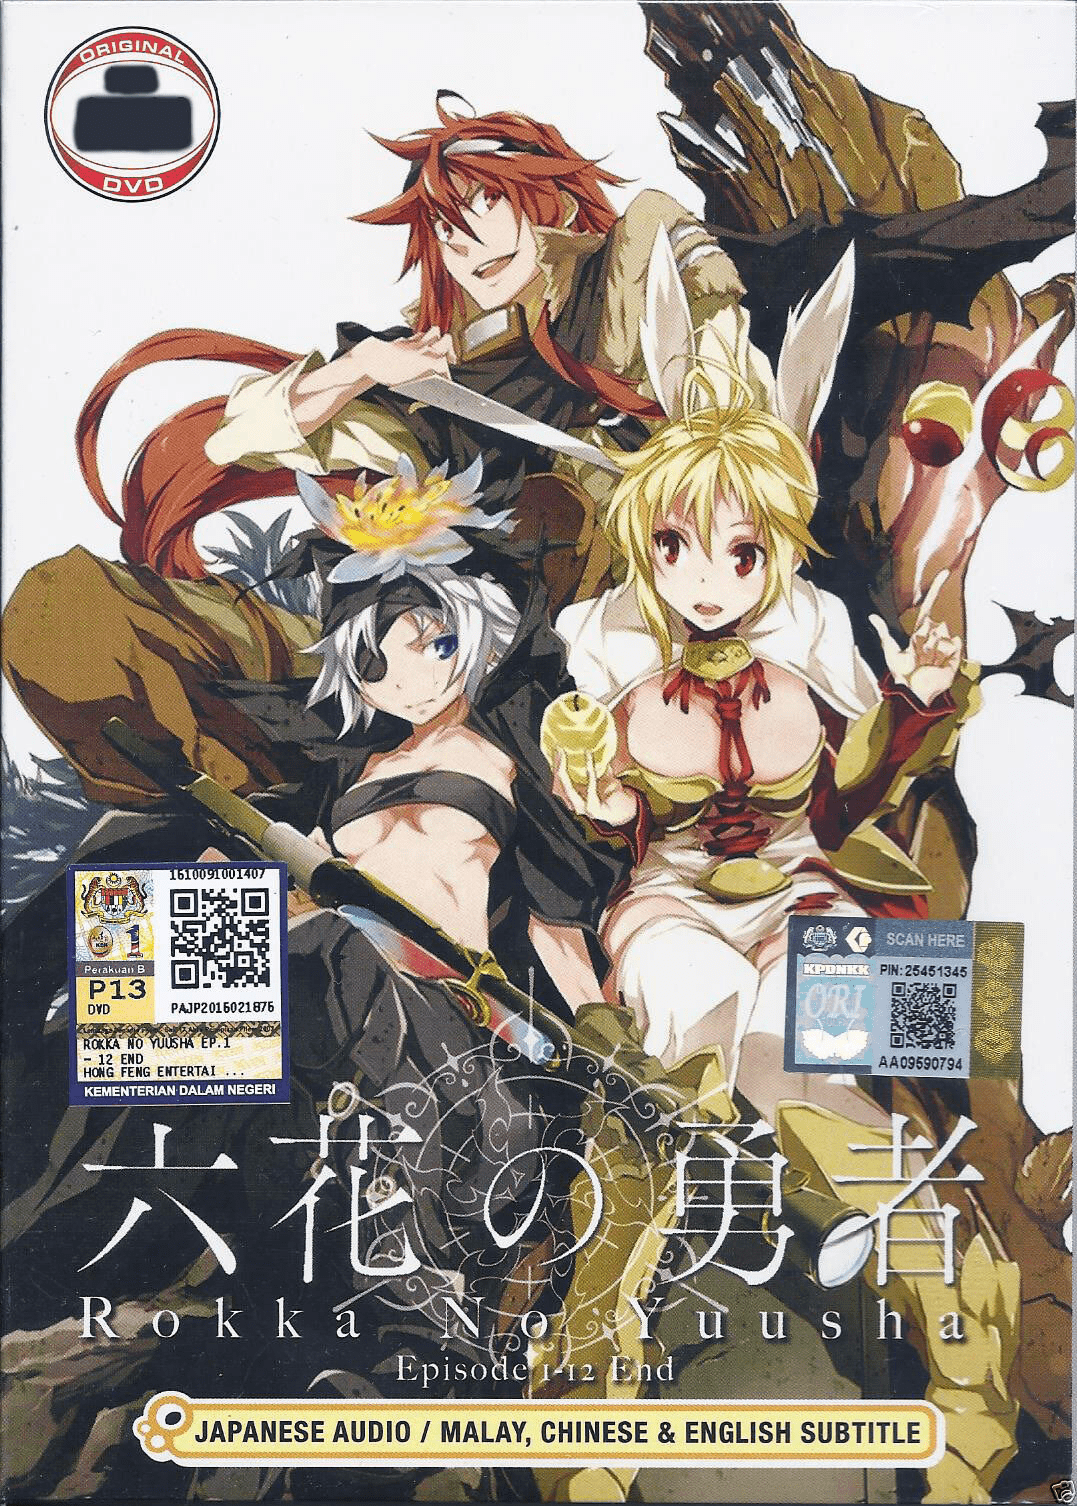 Rokka No Yuusha: Braves Of The Six Flowers Anime Vol. 1 - 12 End DVD